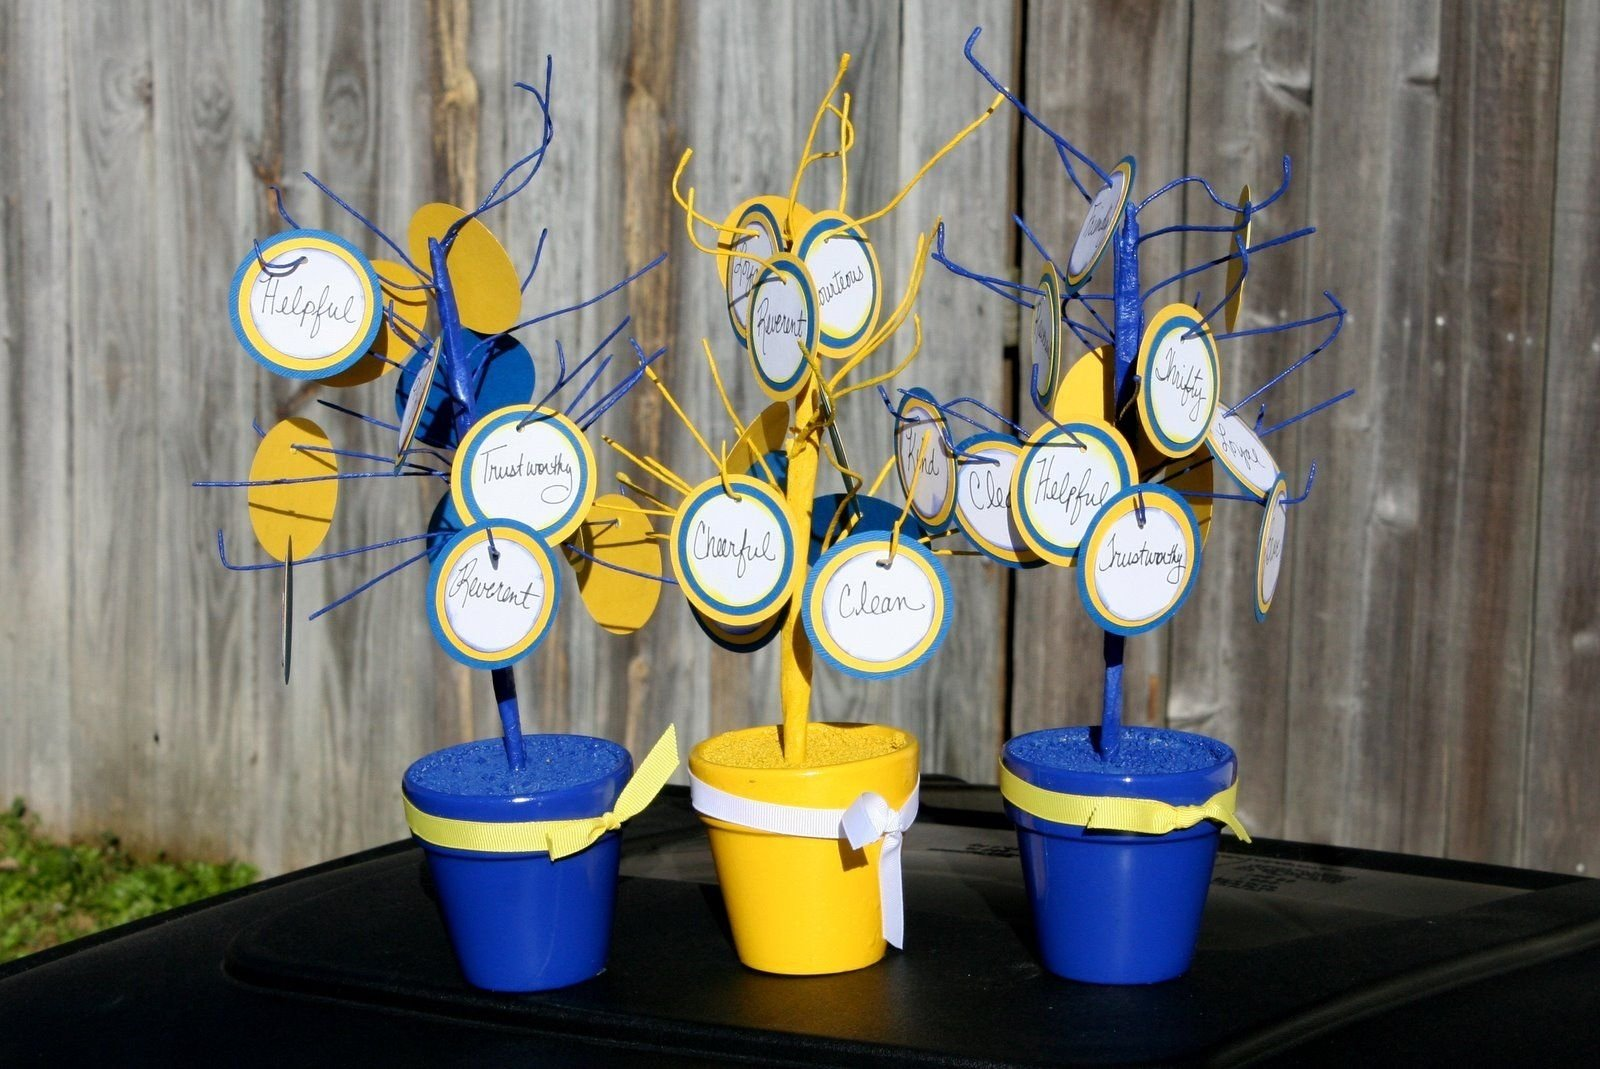 10 Stylish Cub Scout Blue And Gold Banquet Ideas lindylu designs cub scout blue and gold banquet centerpieces spray 1 2020